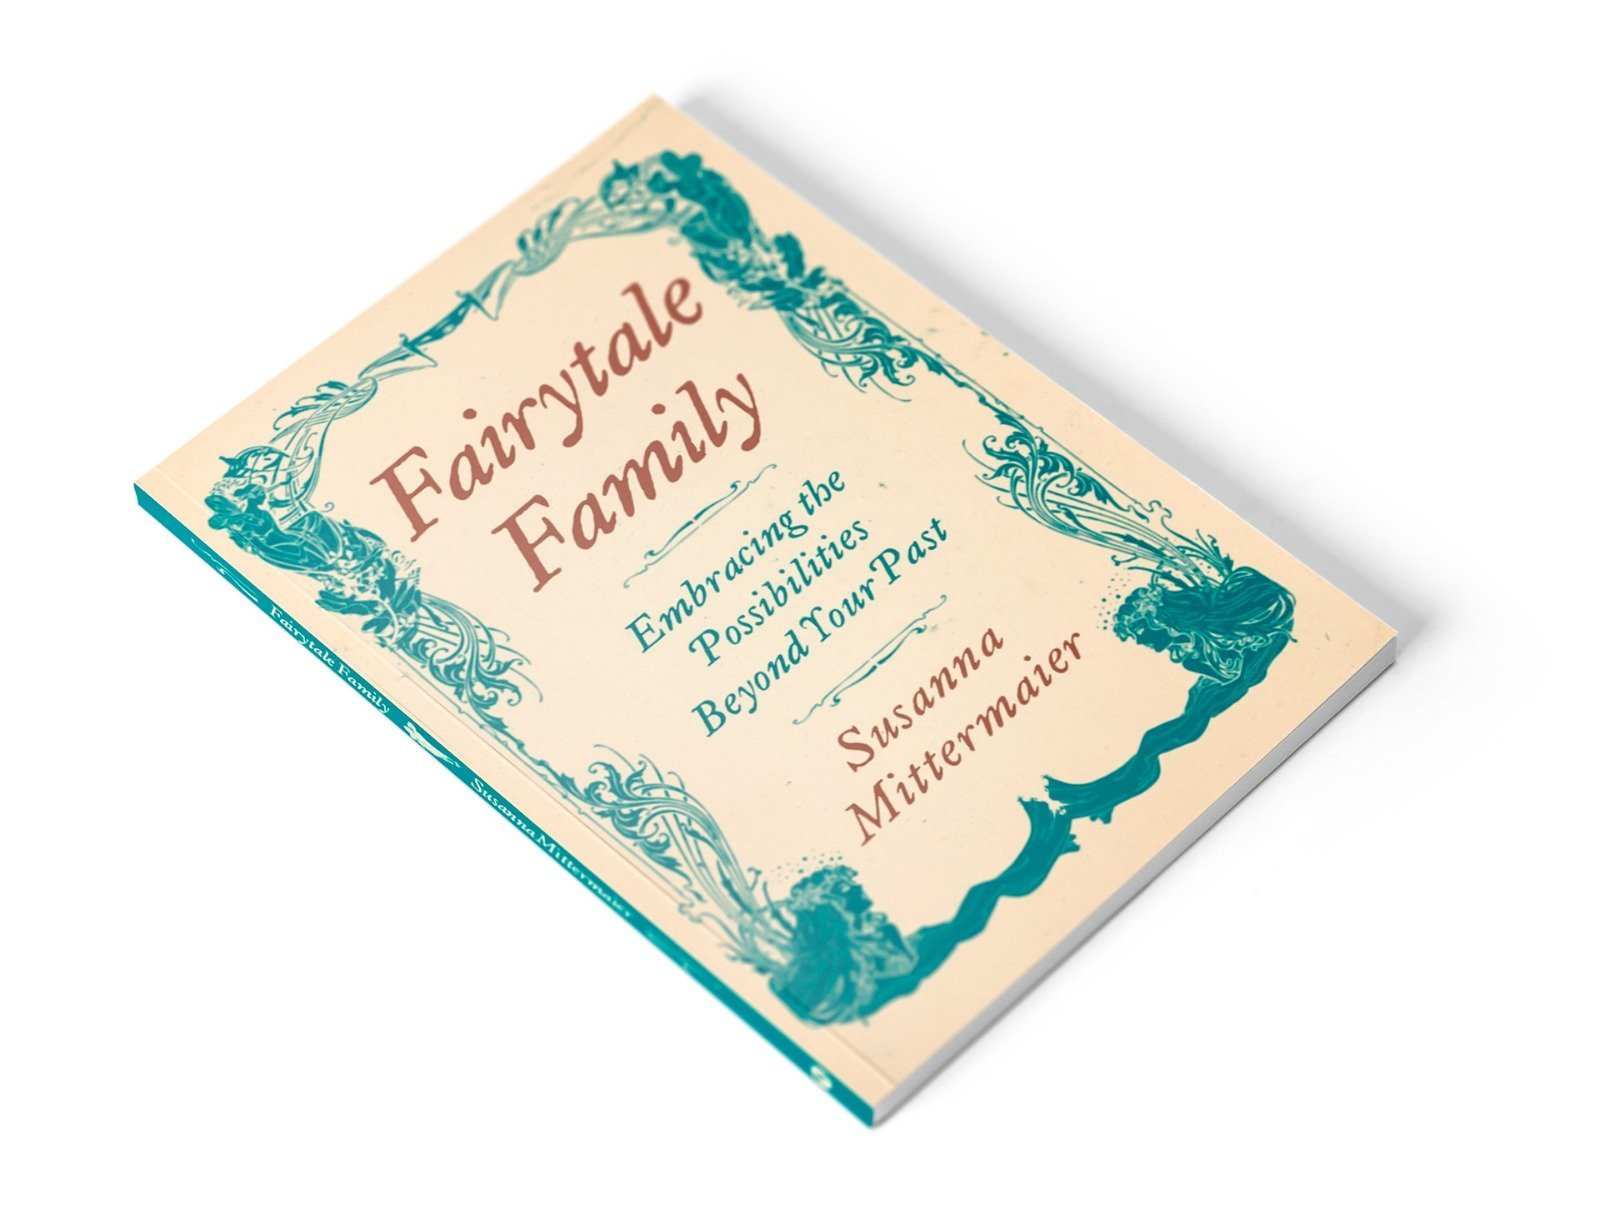 https://www.accessconsciousness.com/en/shop-catalog/book/fairytale-family/#/_aid=Susanna